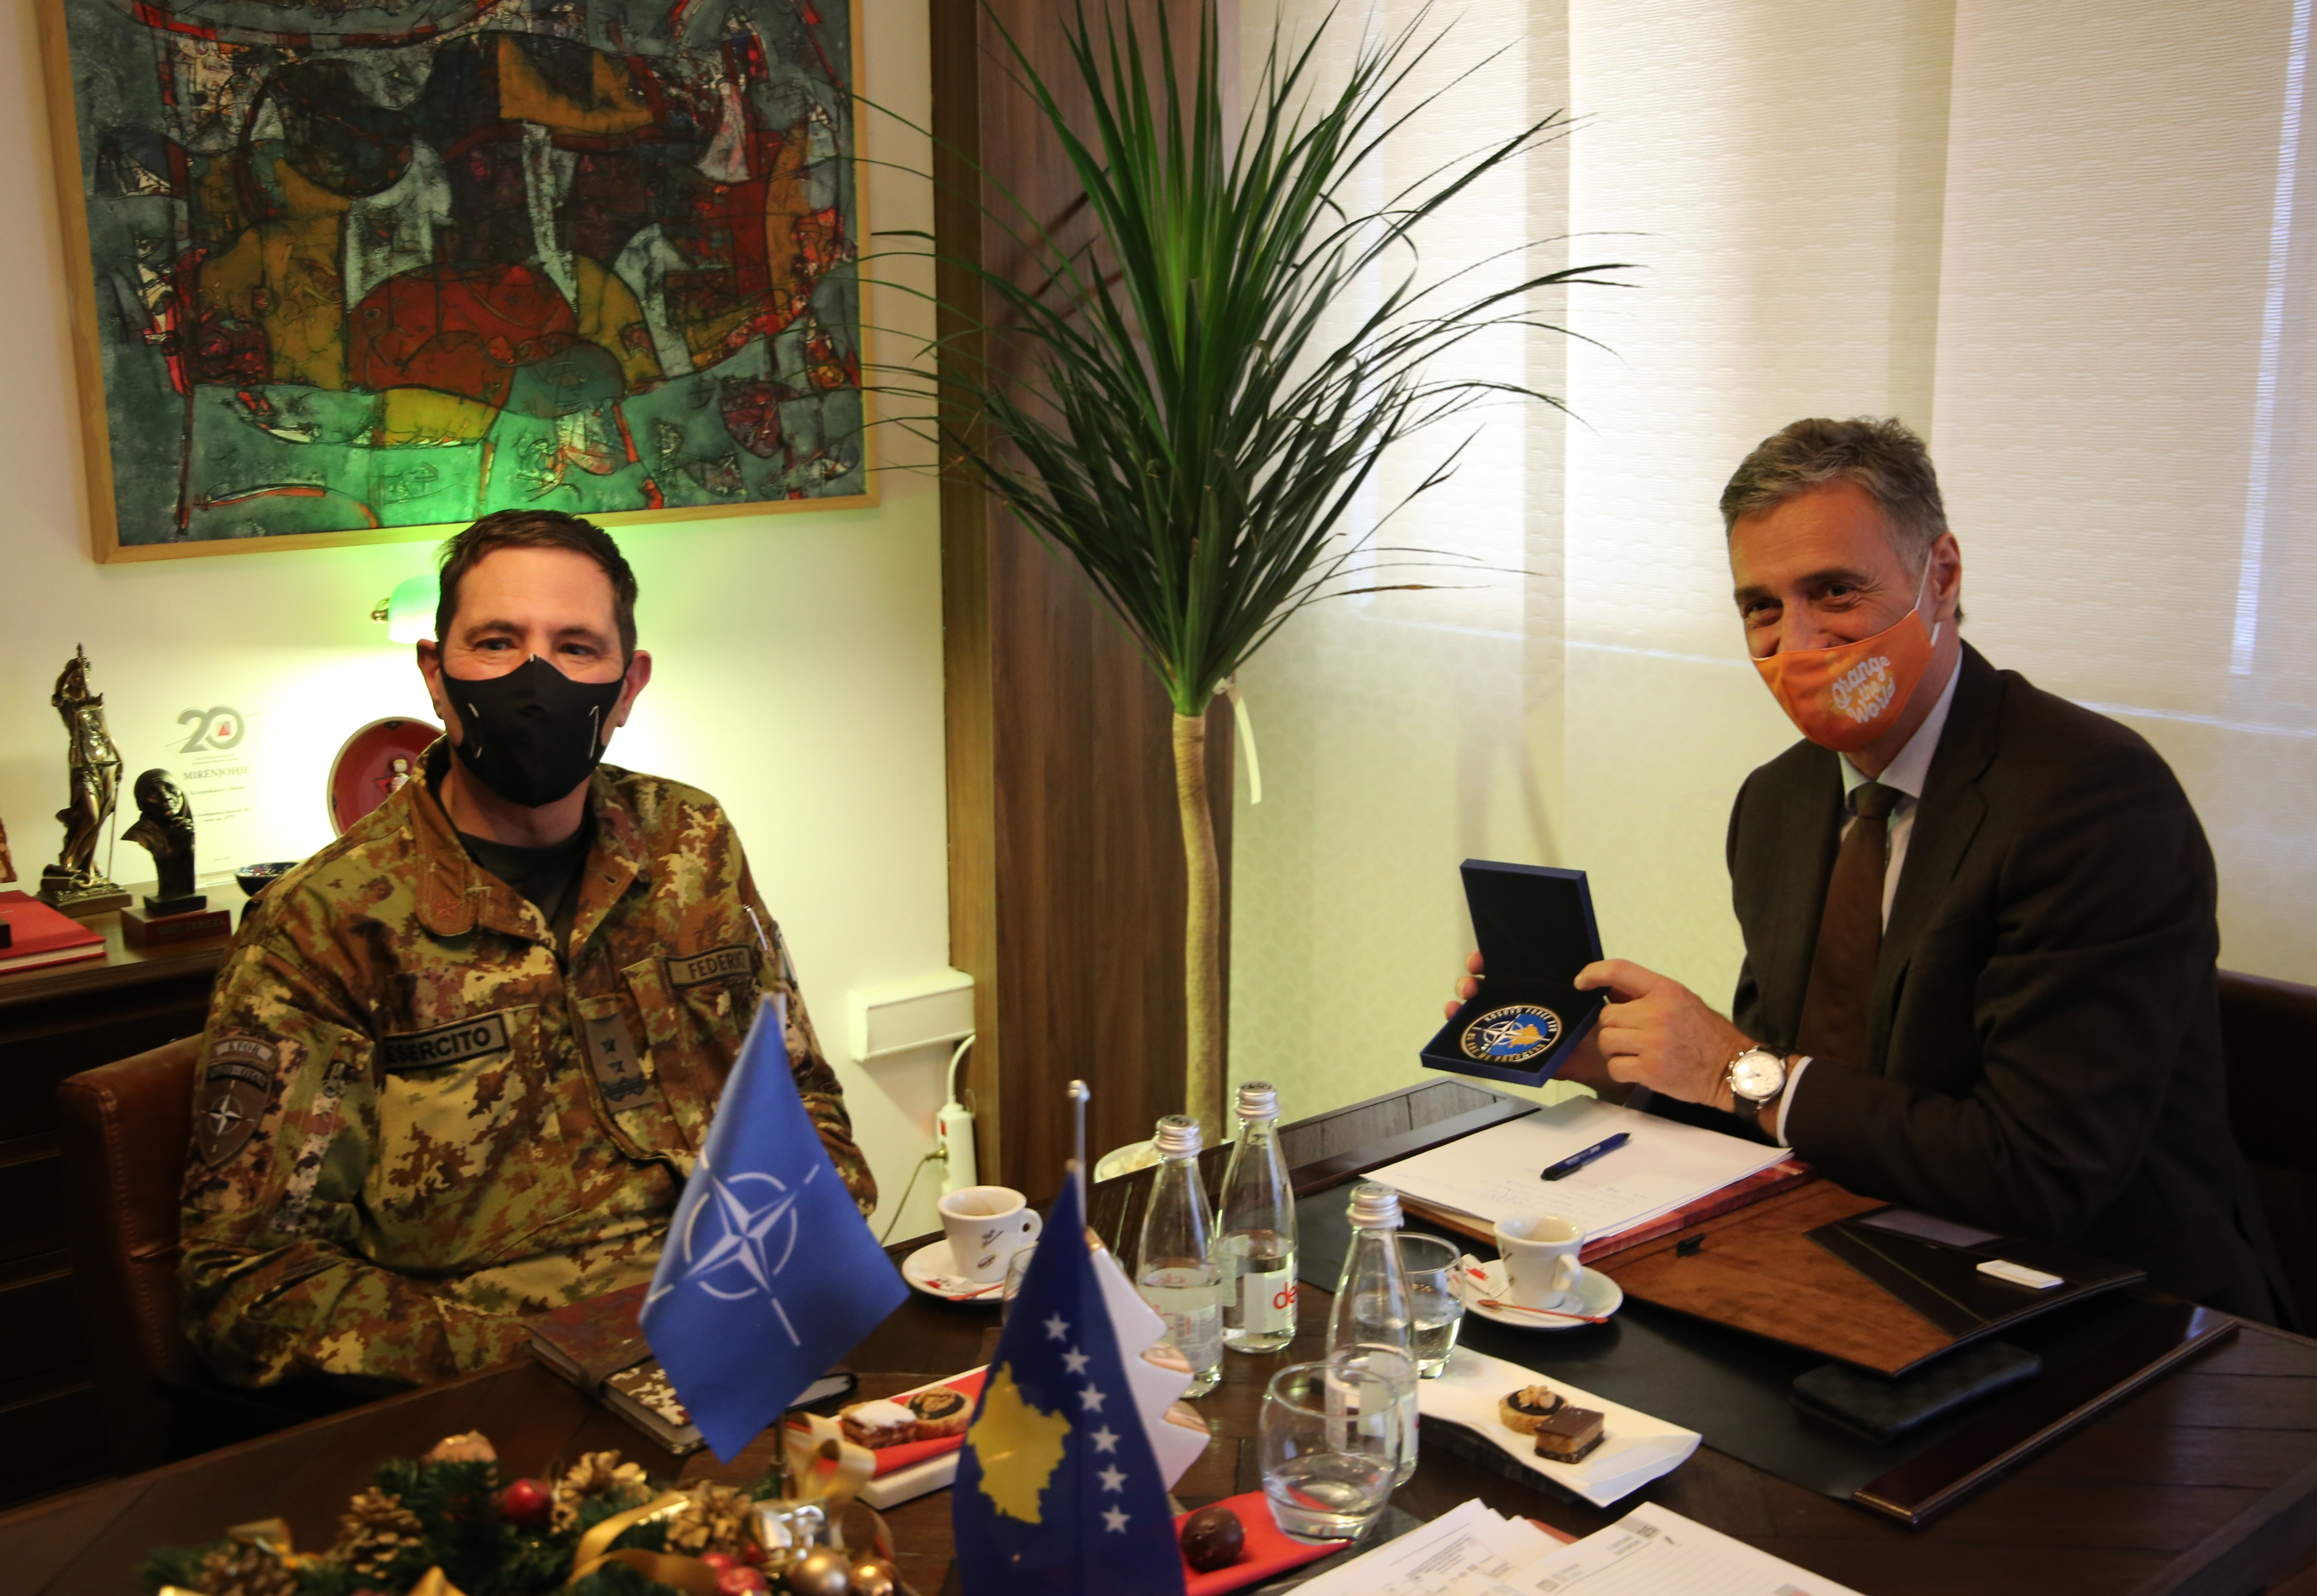 Intensification of cooperation between the State Prosecutor and the KFOR mission in Kosovo is discussed